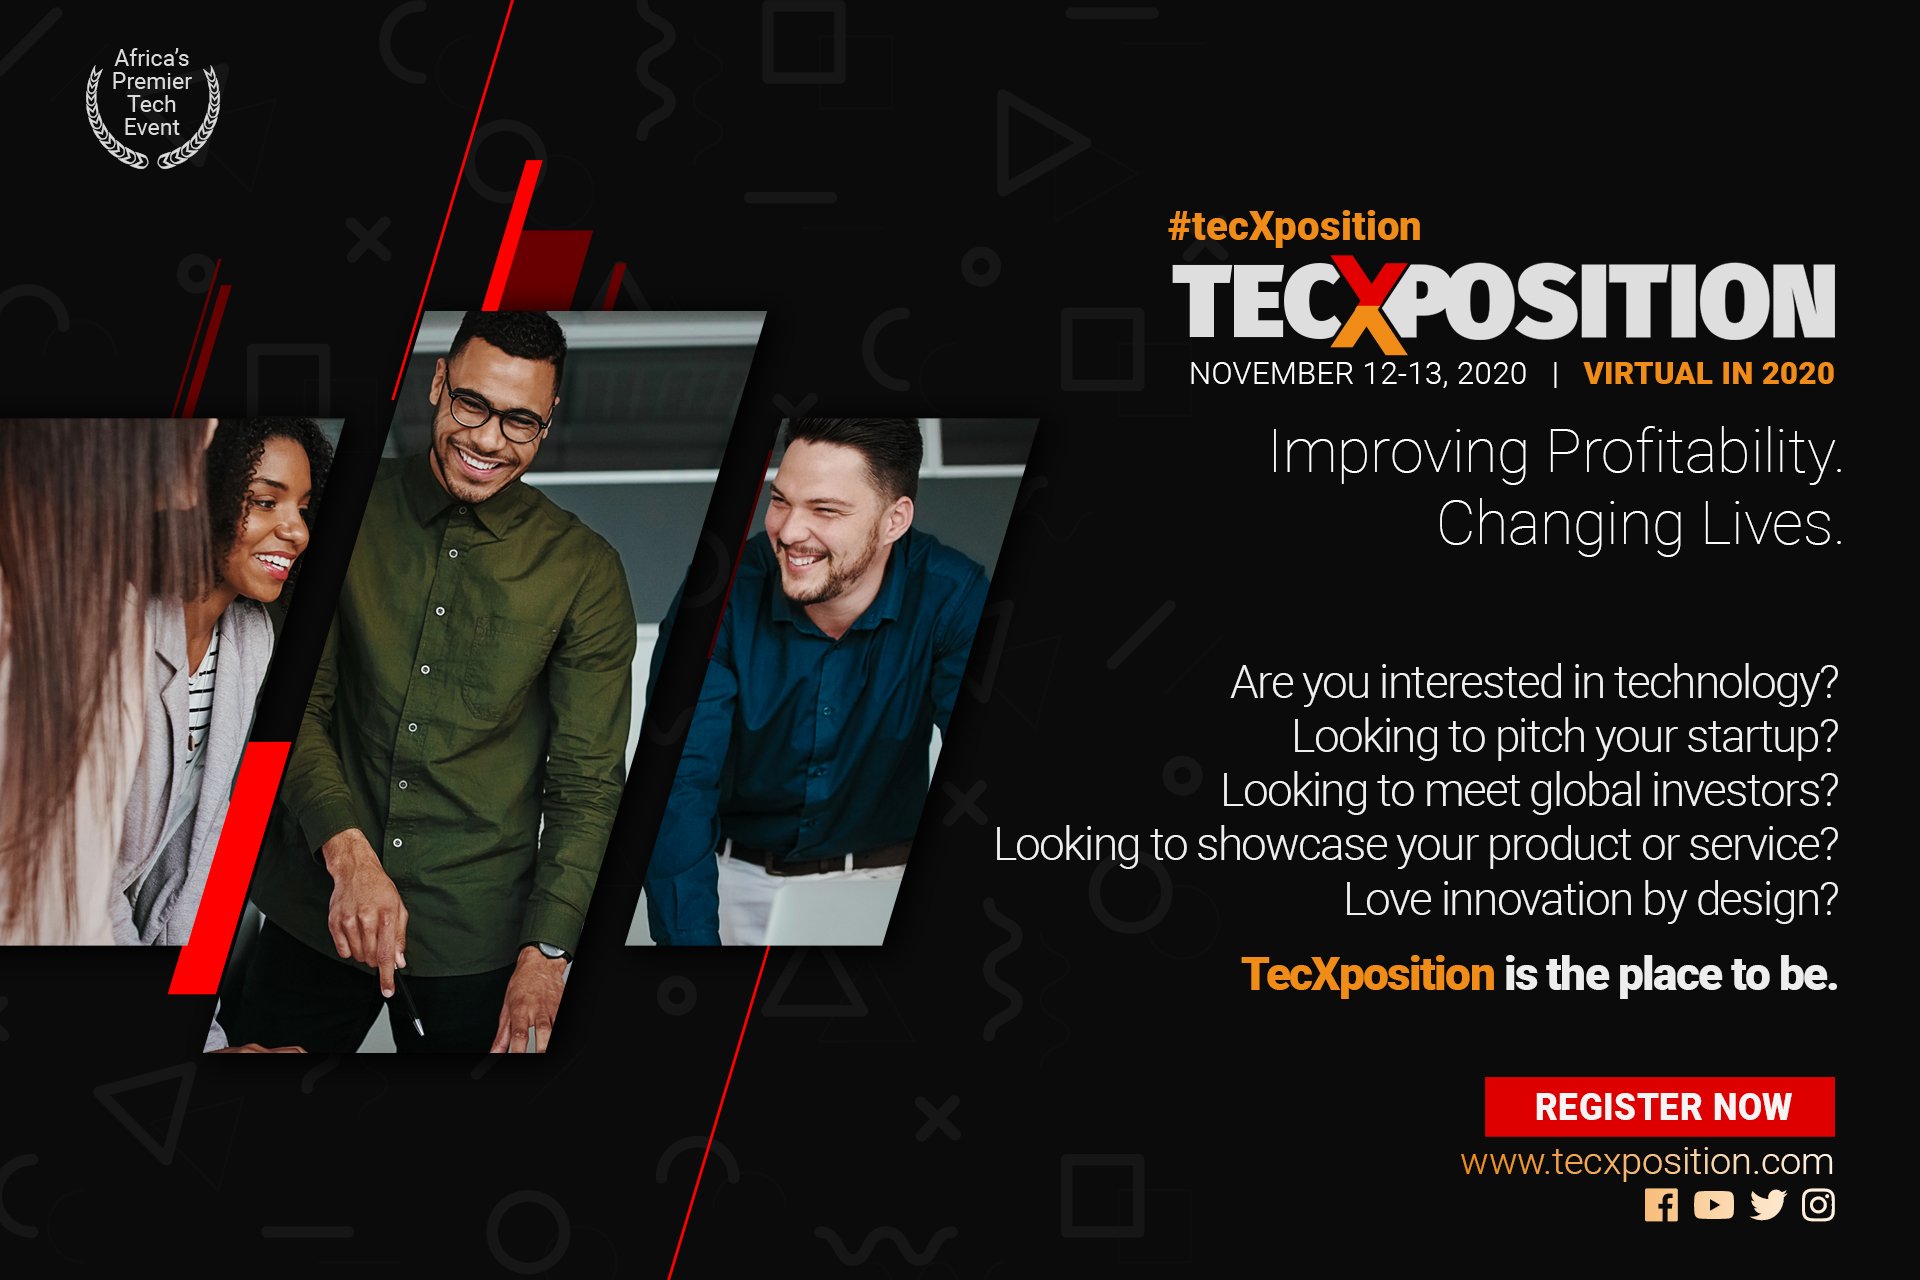 Bespectacled announces the launch of TecXposition 2020